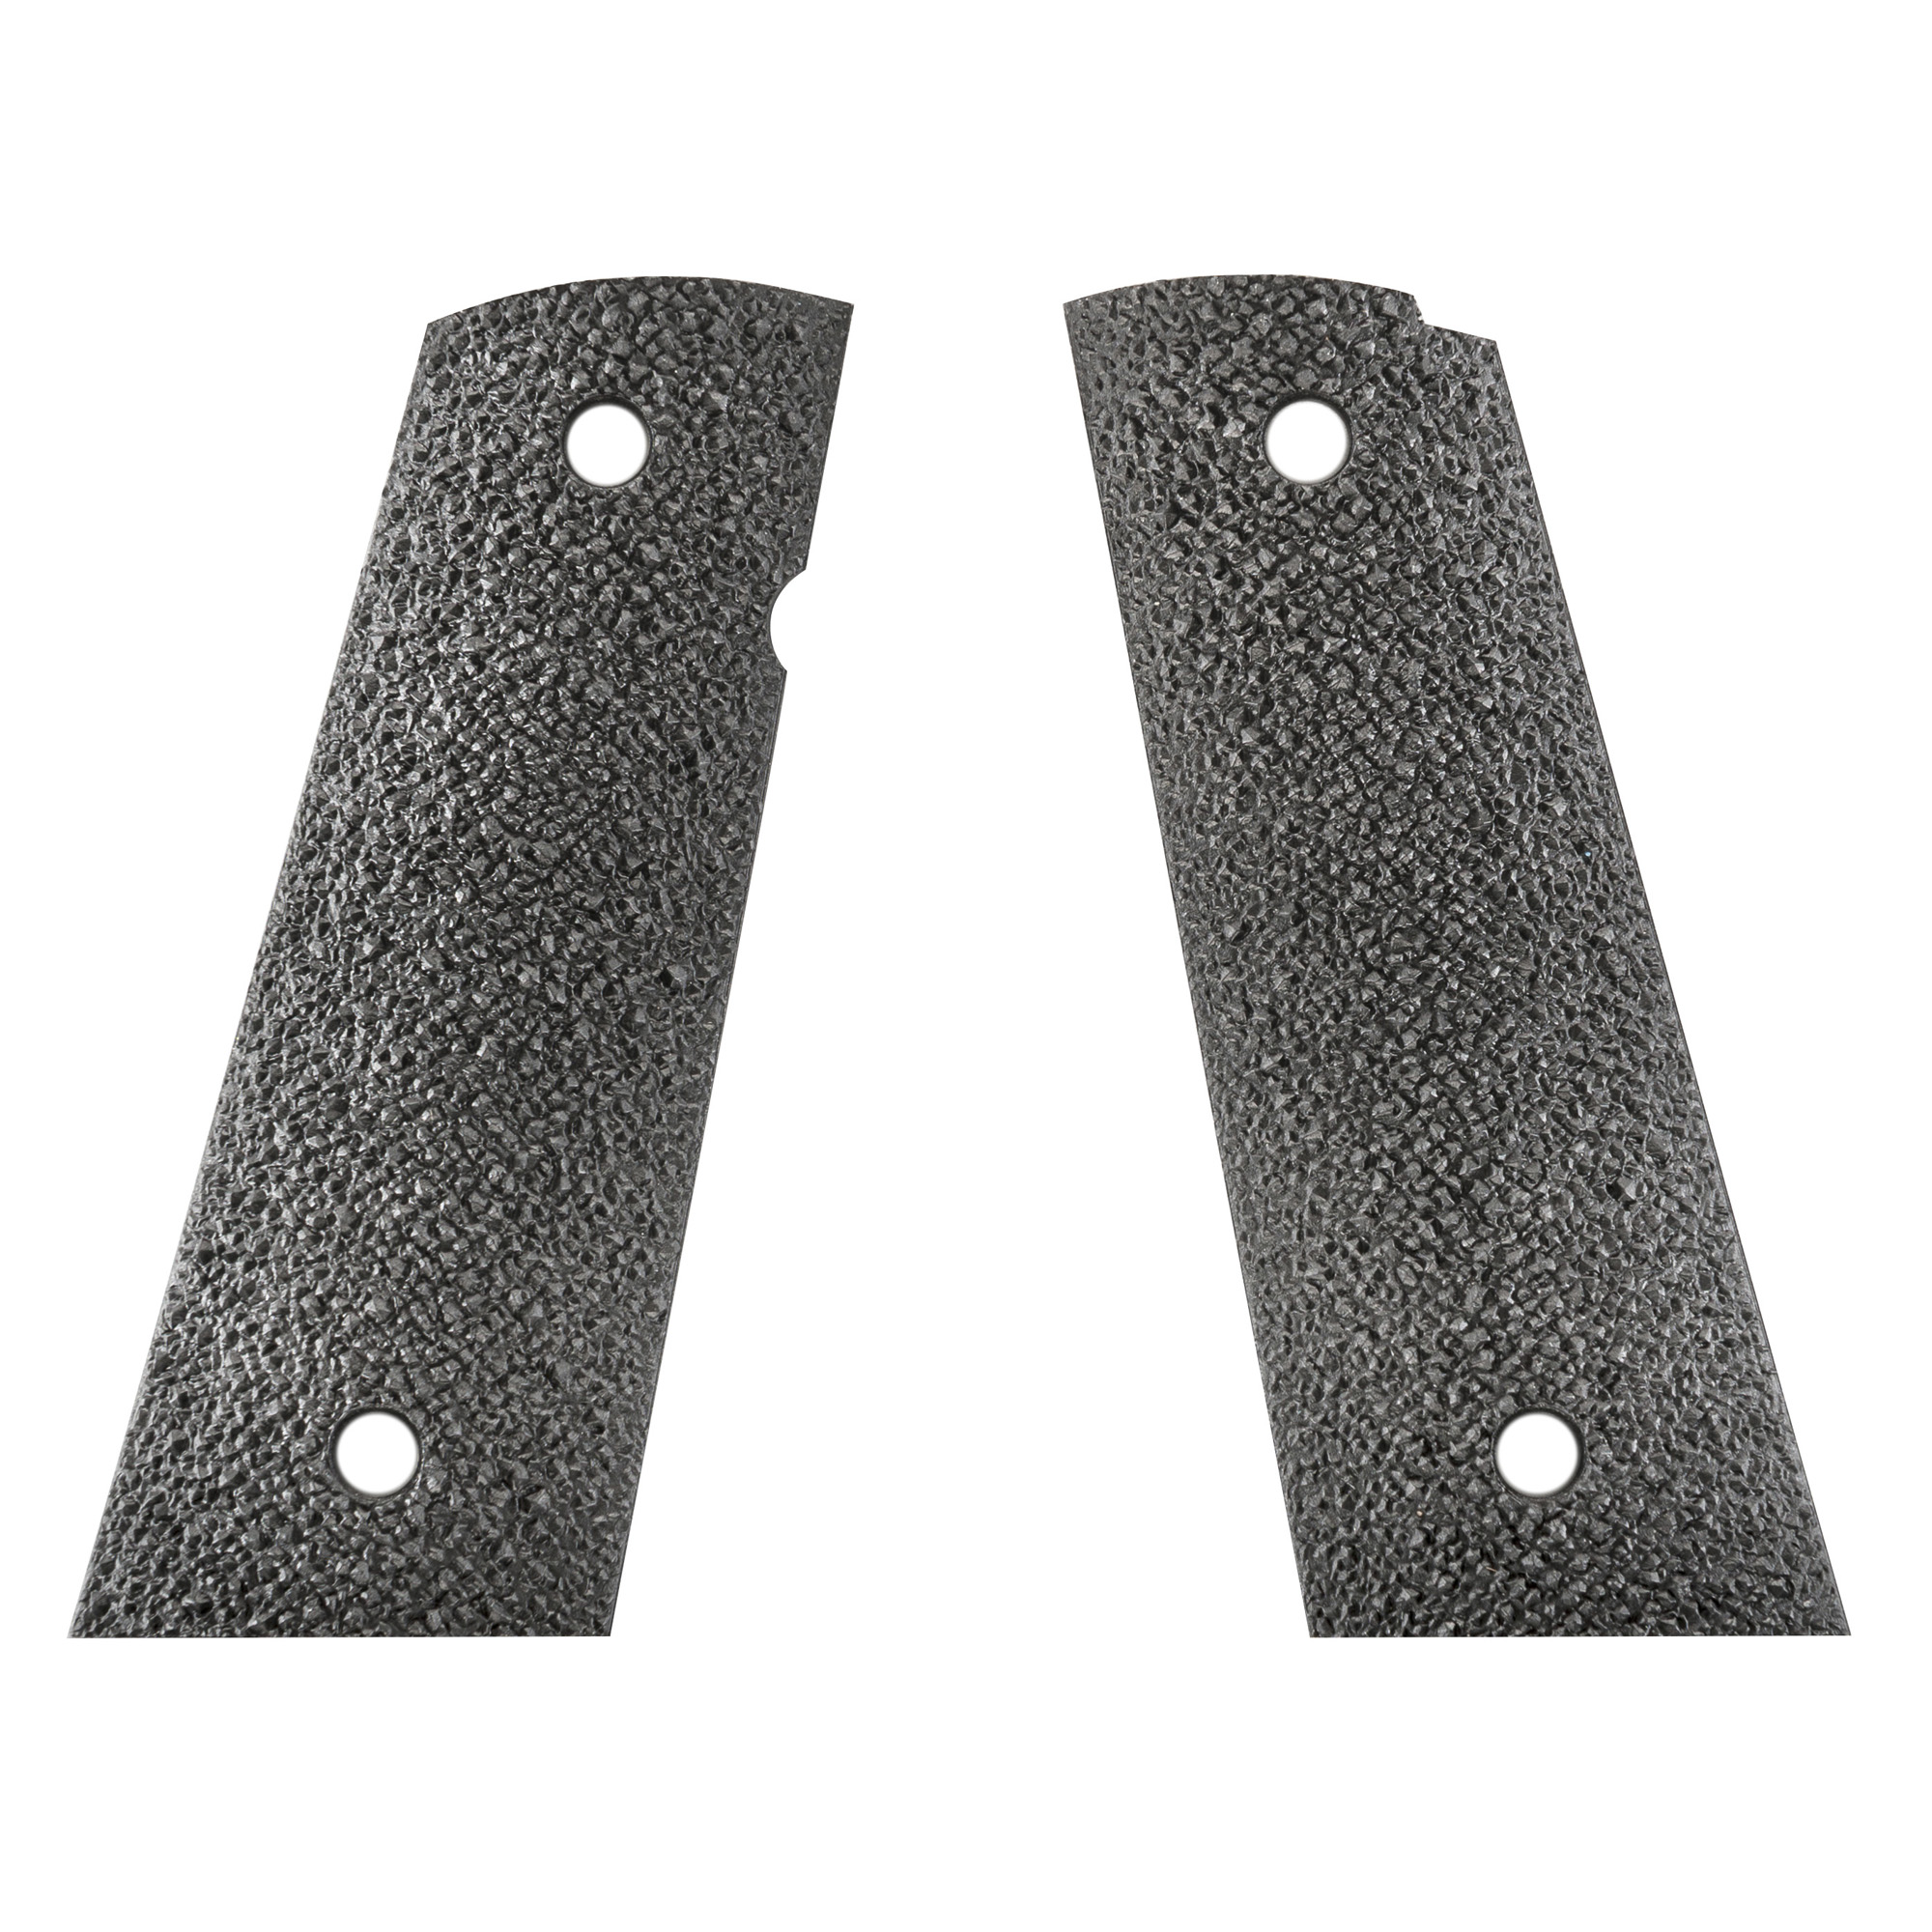 "ERGO's XTR Square Bottom Hard Rubber 1911 Grip is a heavily textured"" minimally abrasive grip for Standard 1911 frames. Its thin profile attaches with standard grip screws and is designed to accommodate ambidextrous safety options."